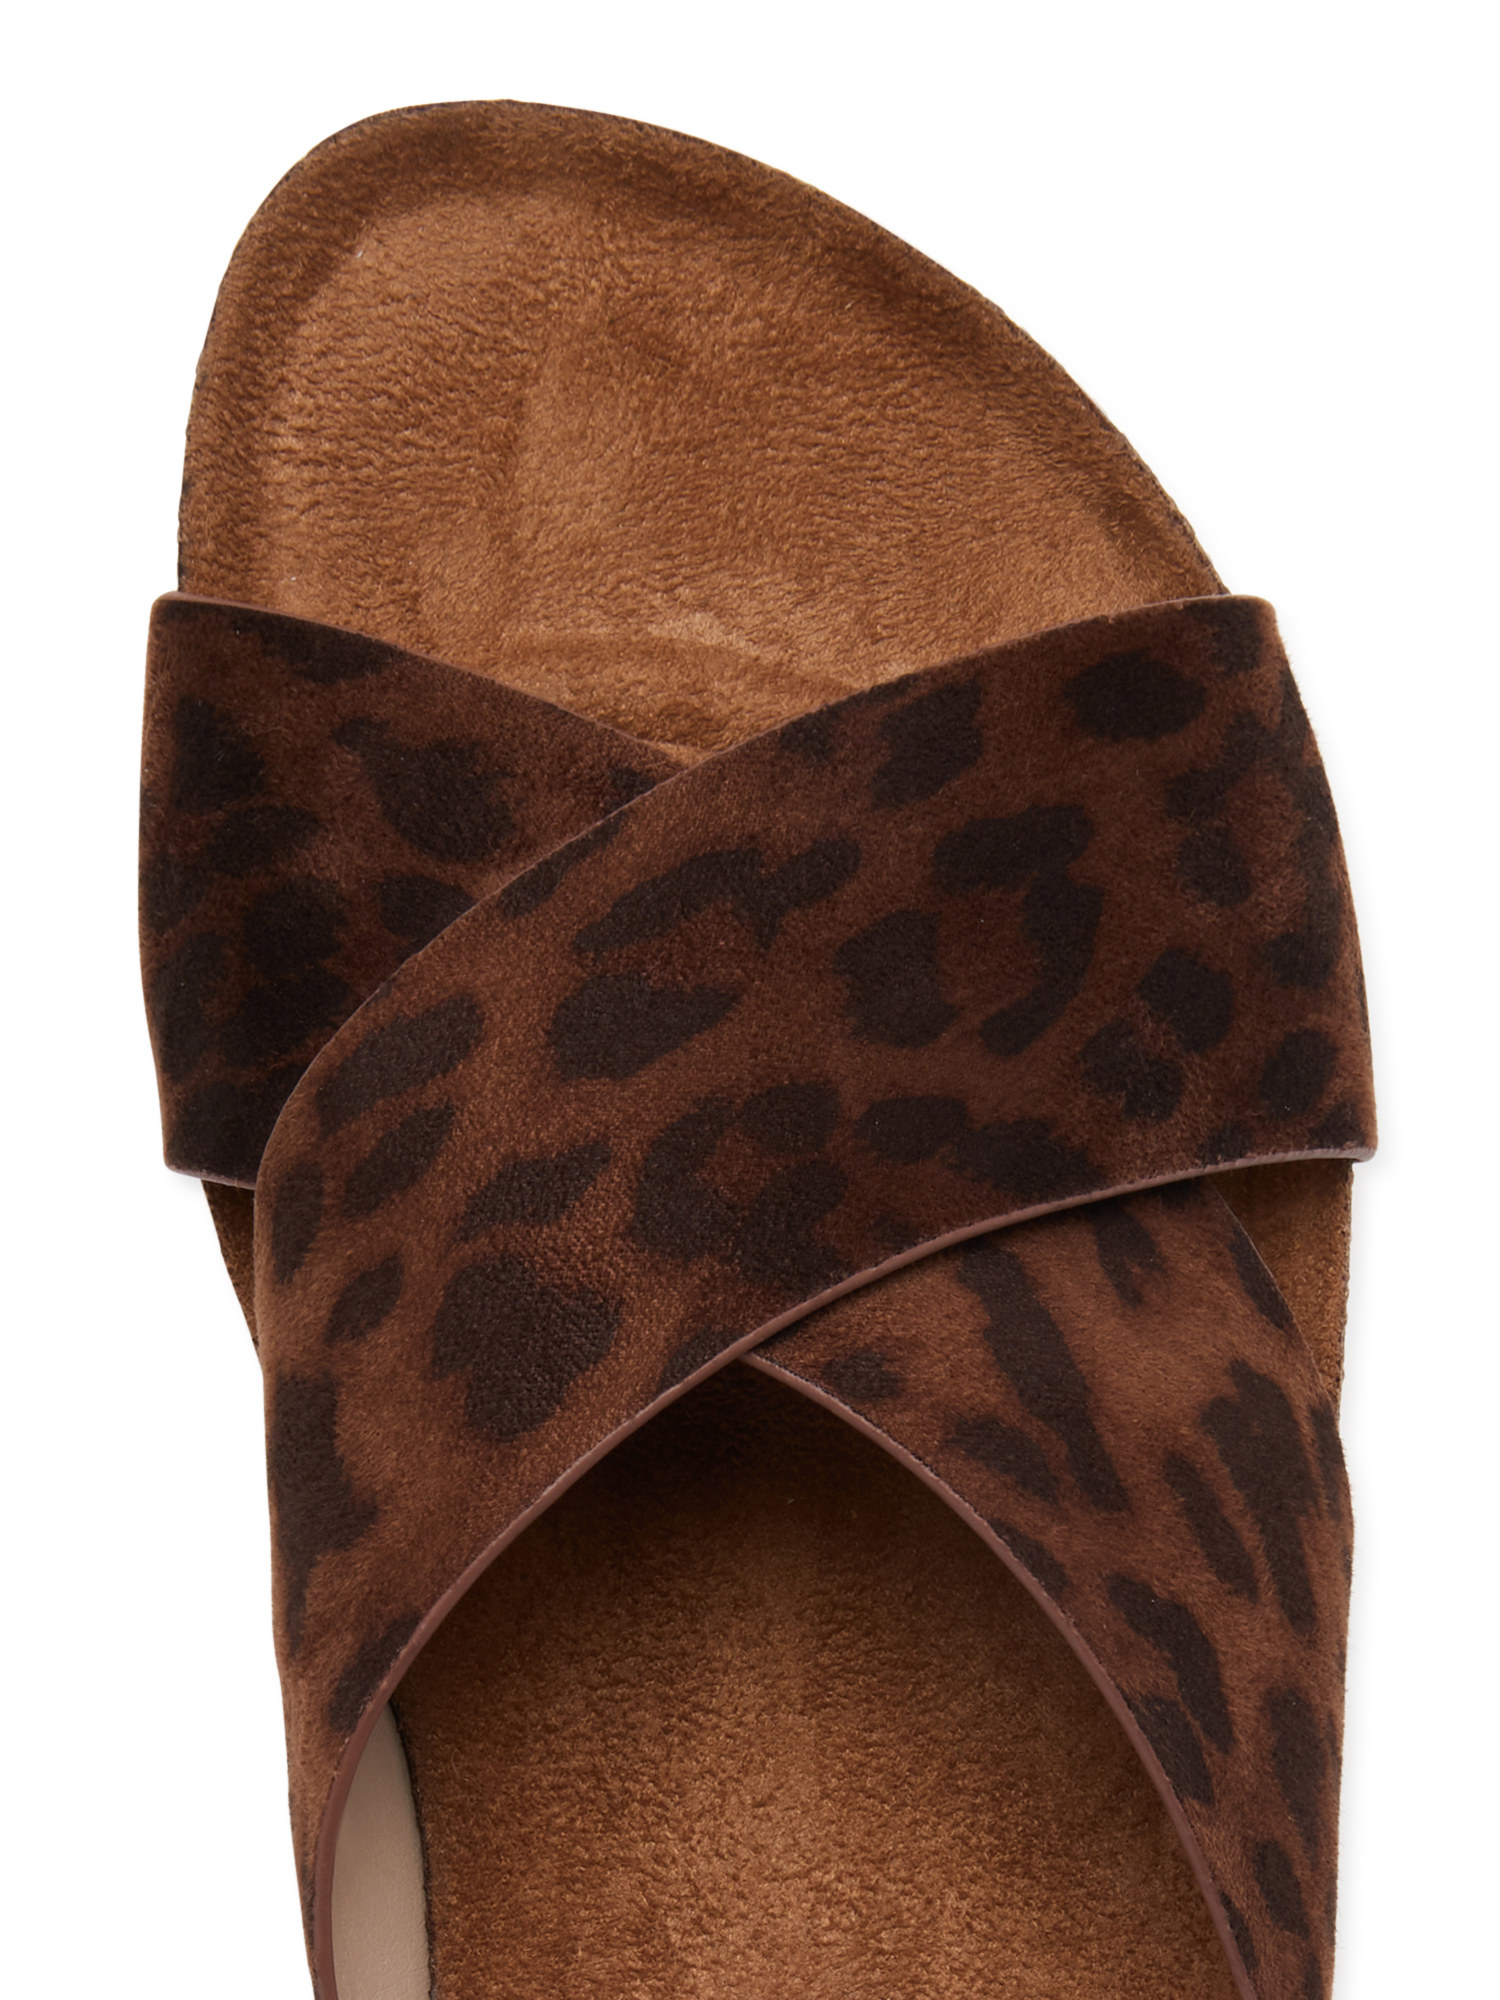 A top-down view of a leopard print sandal